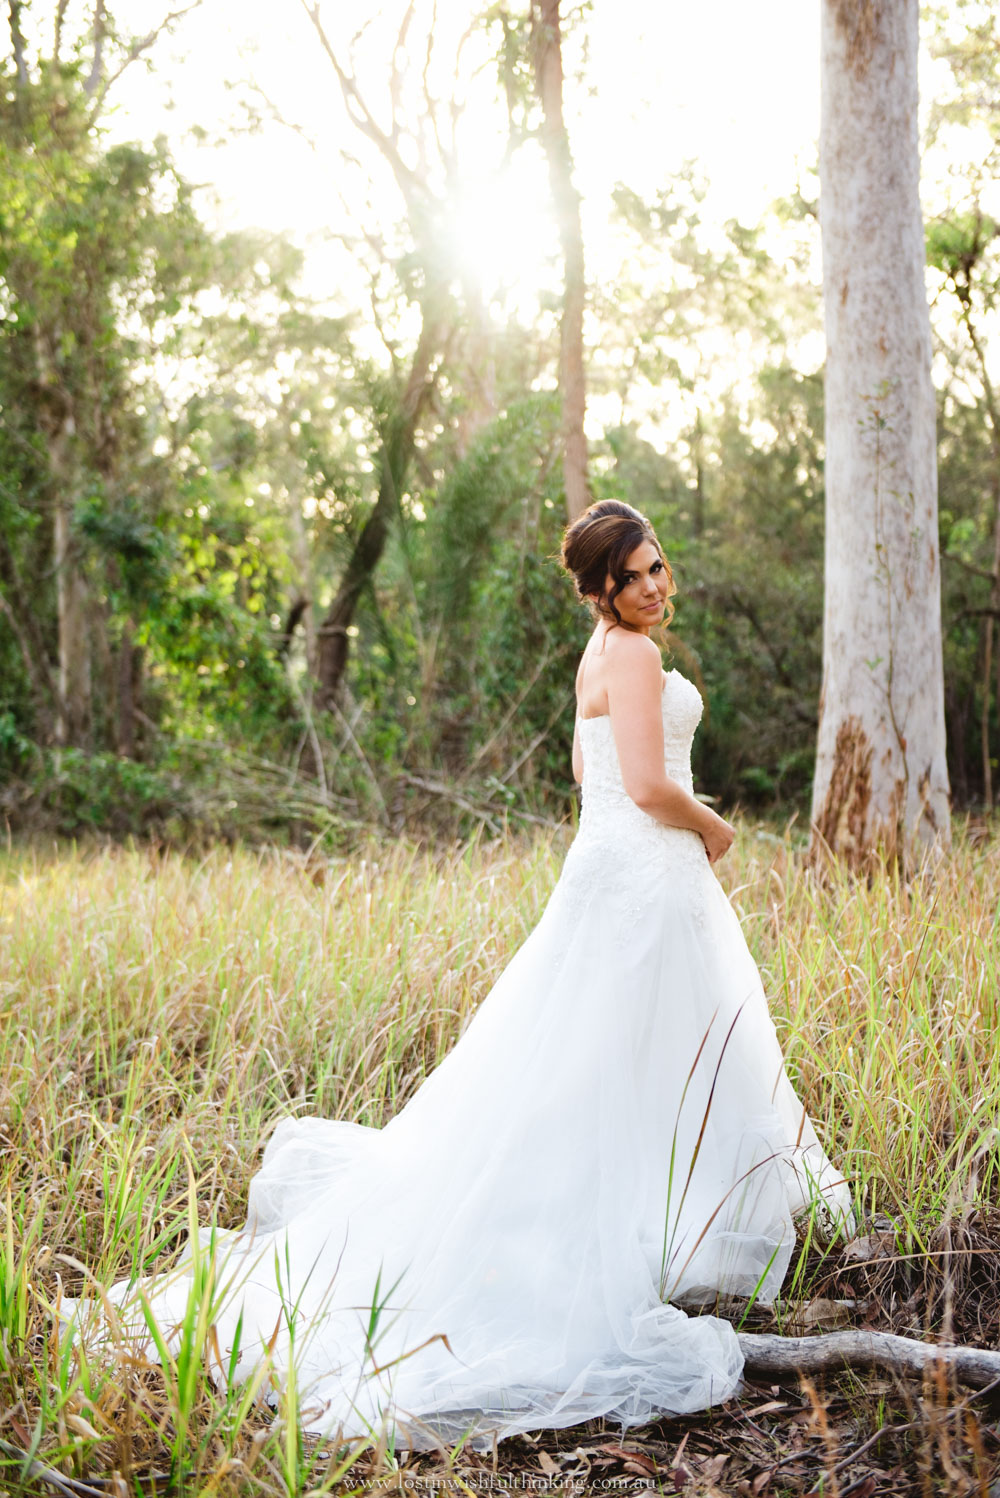 WEB-hannahmccawley-rachelle&murray-reshoot-sunsetwedding-35